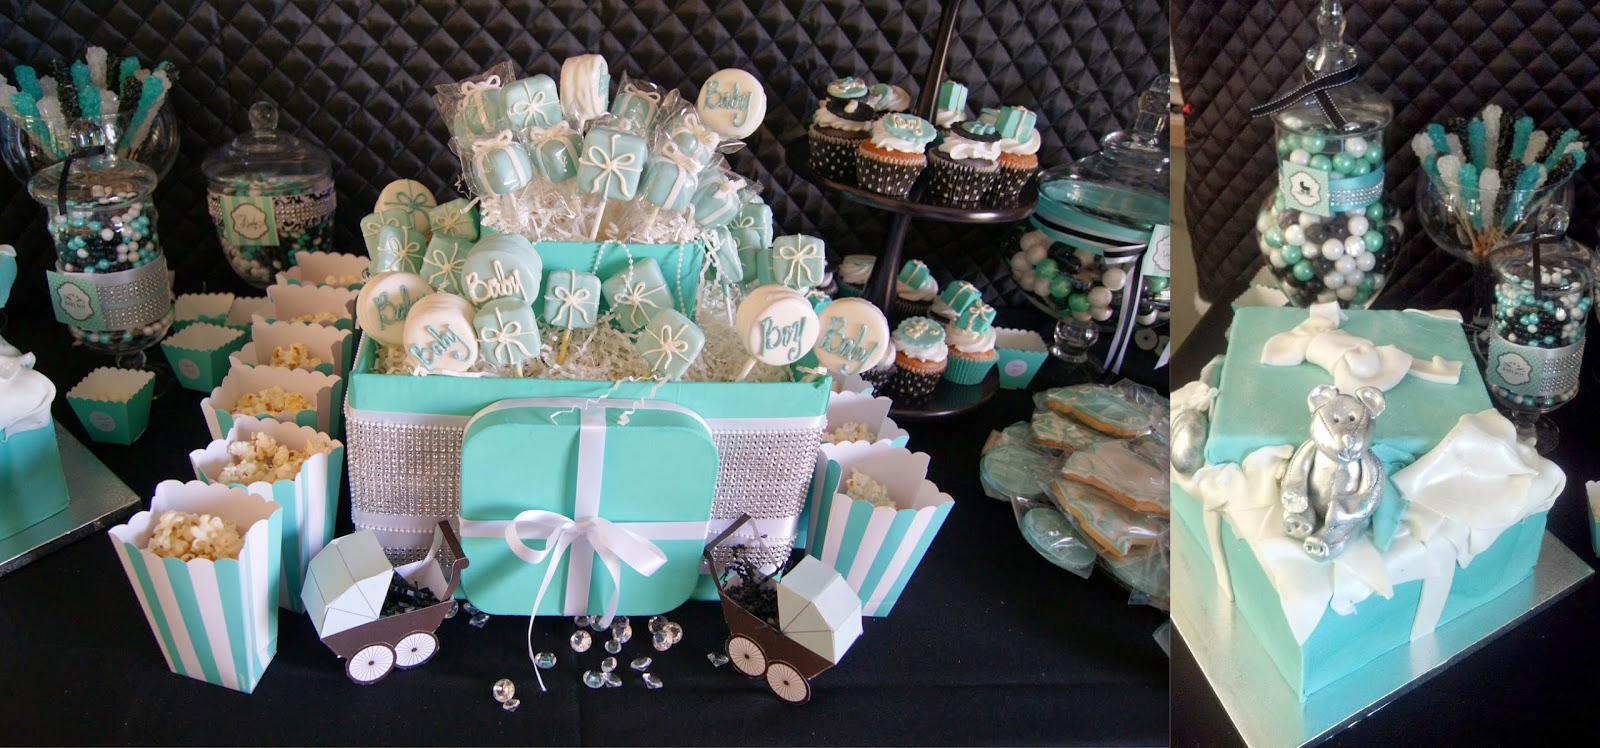 breakfast at tiffany's theme party, allthingsslim, baby shower, party inspiration,